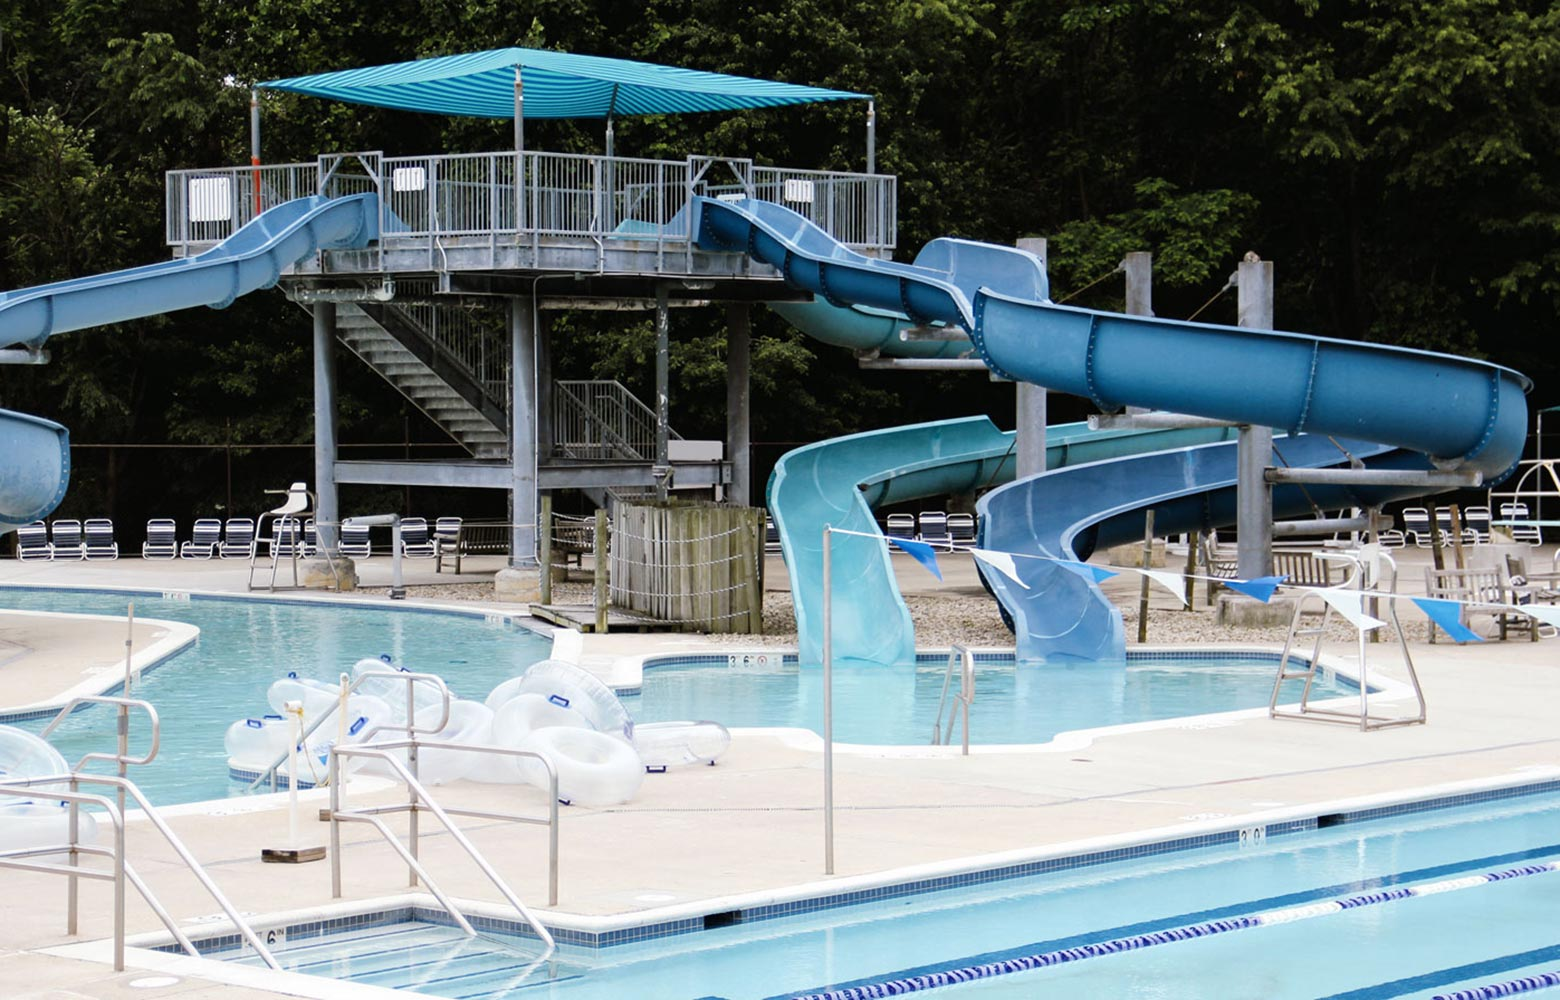 slides at outdoor pool